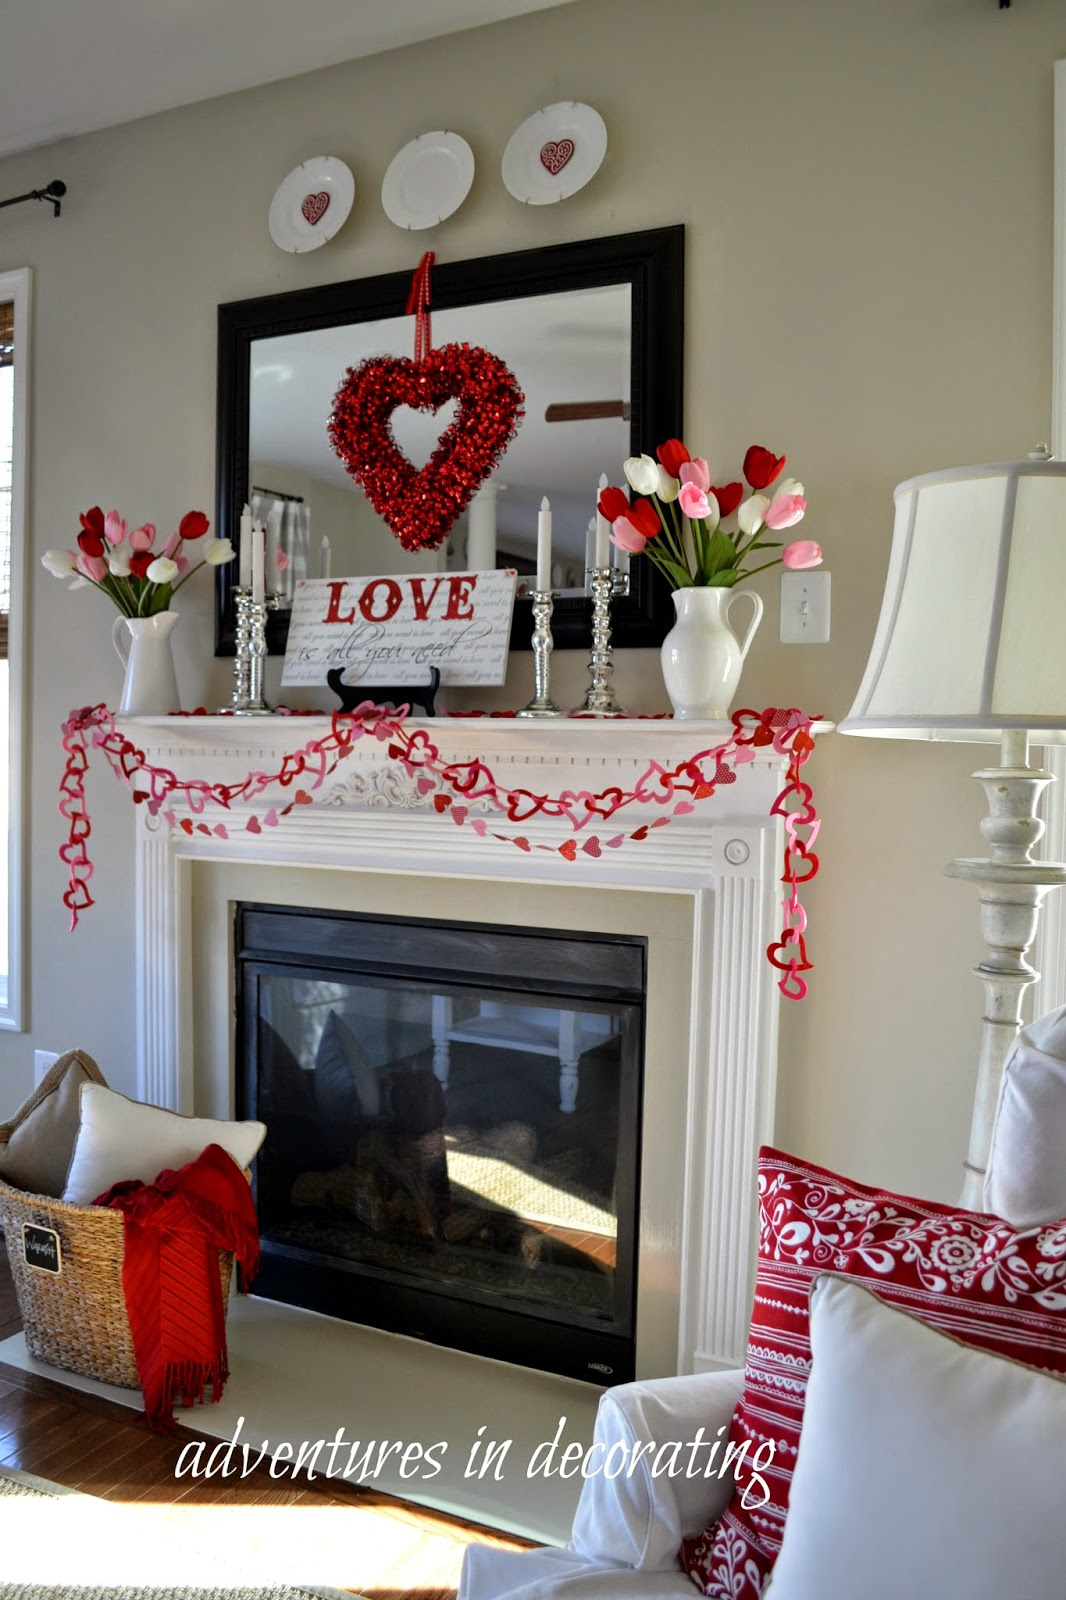 Adventures in decorating a little more valentine decorating - Valentines room decoration ideas ...